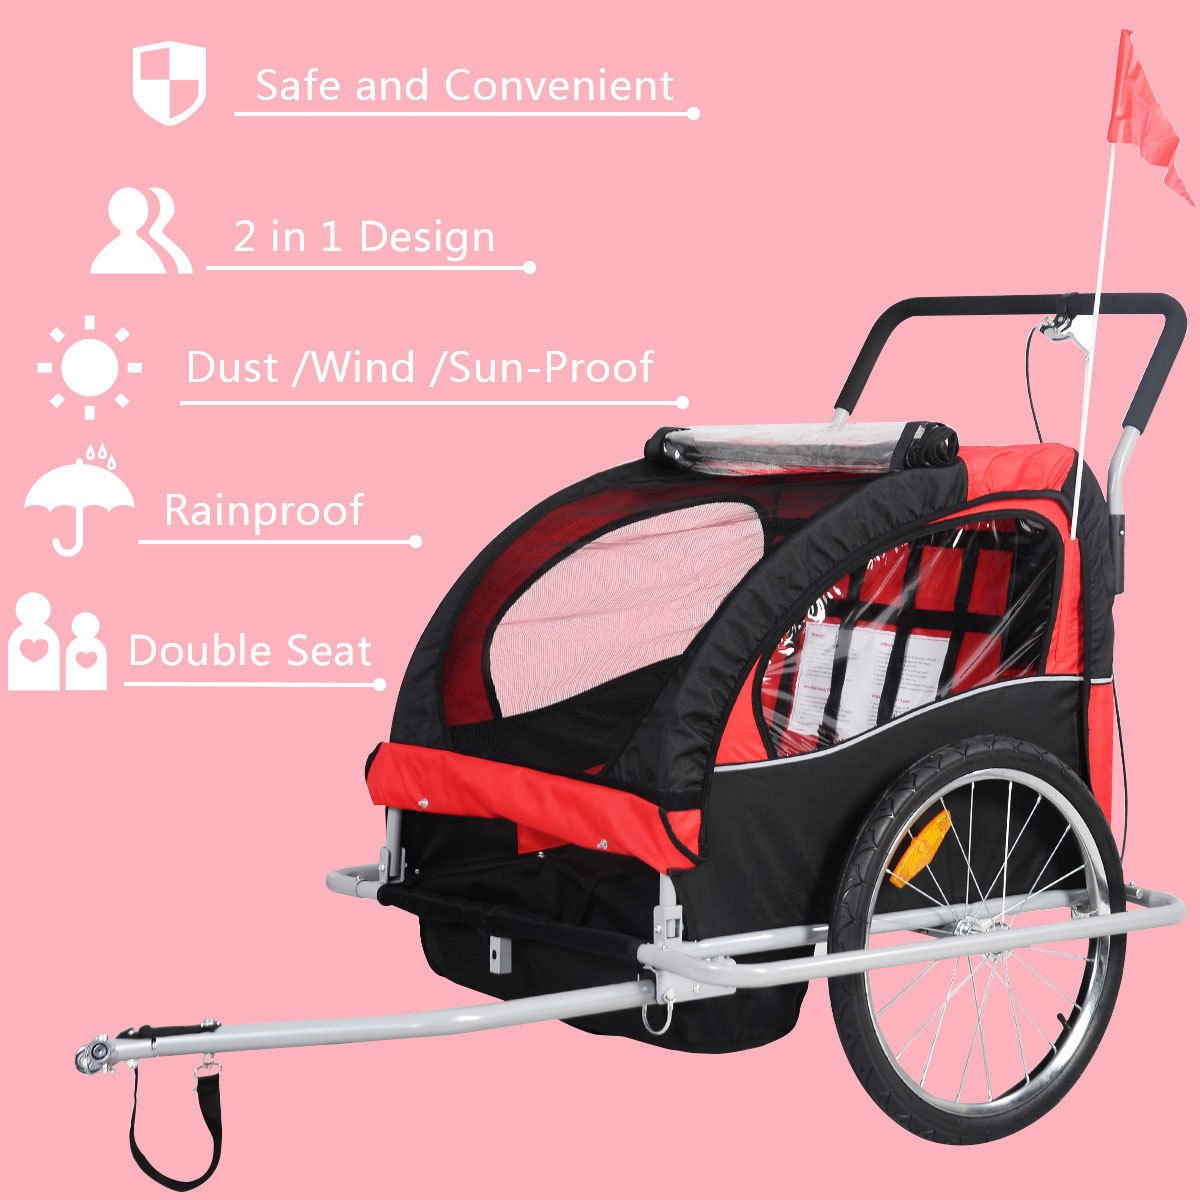 Giantex Child Trailer Bicycle Double Foldable Bike Carrier Jogger Stroller Outdoor Weather Resistant Deluxe Seat for 2 Kids Portable Baby Bike Trailer W/Canopy Cover, Safety Belt & Hand Brake by Giantex (Image #3)